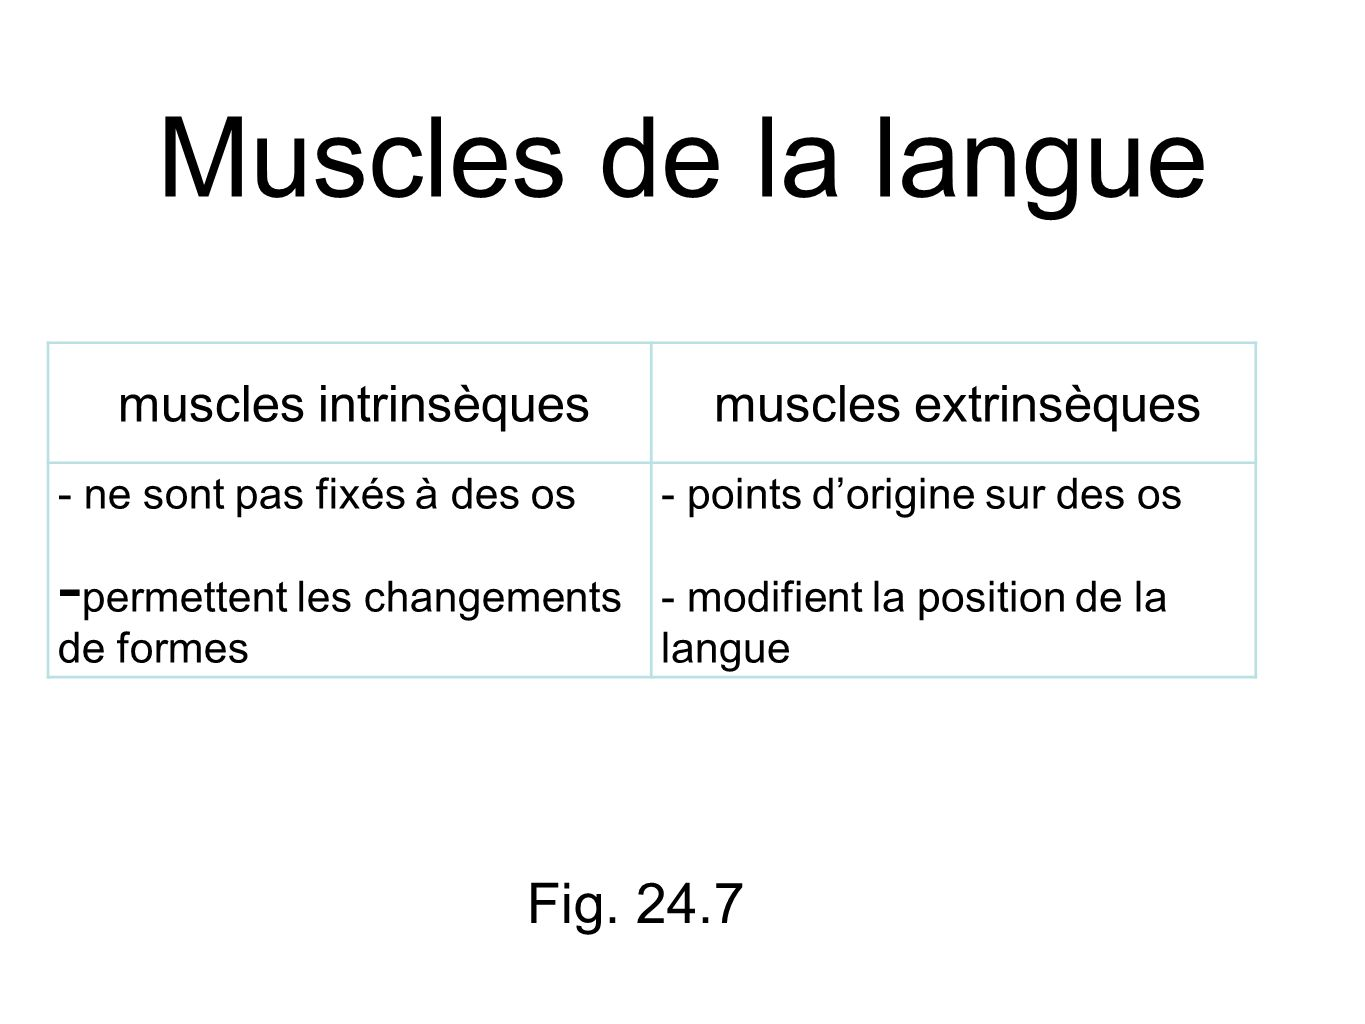 Muscles de la langue Fig muscles intrinsèques